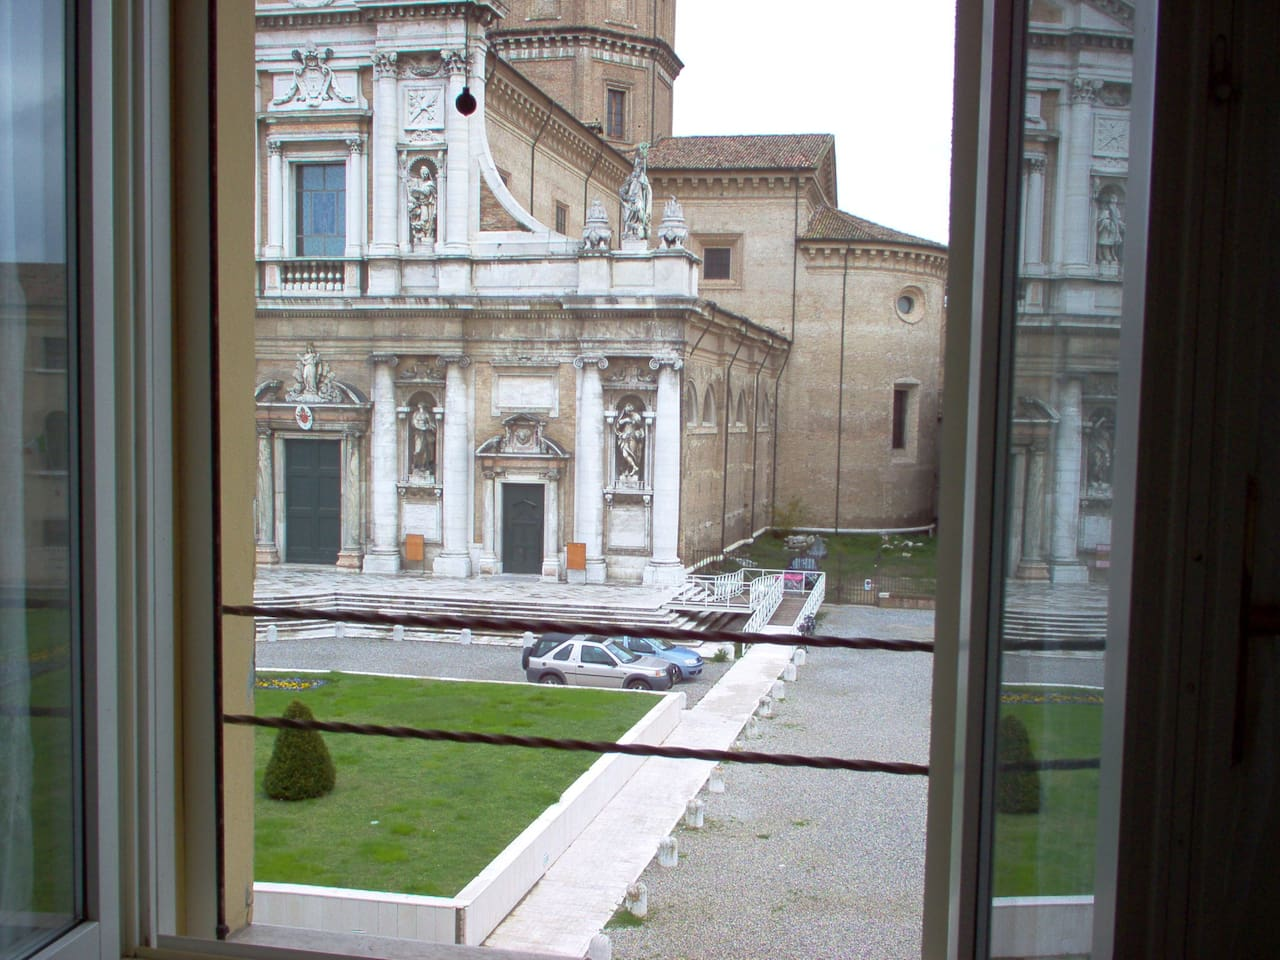 Vista dalla finestra - window view